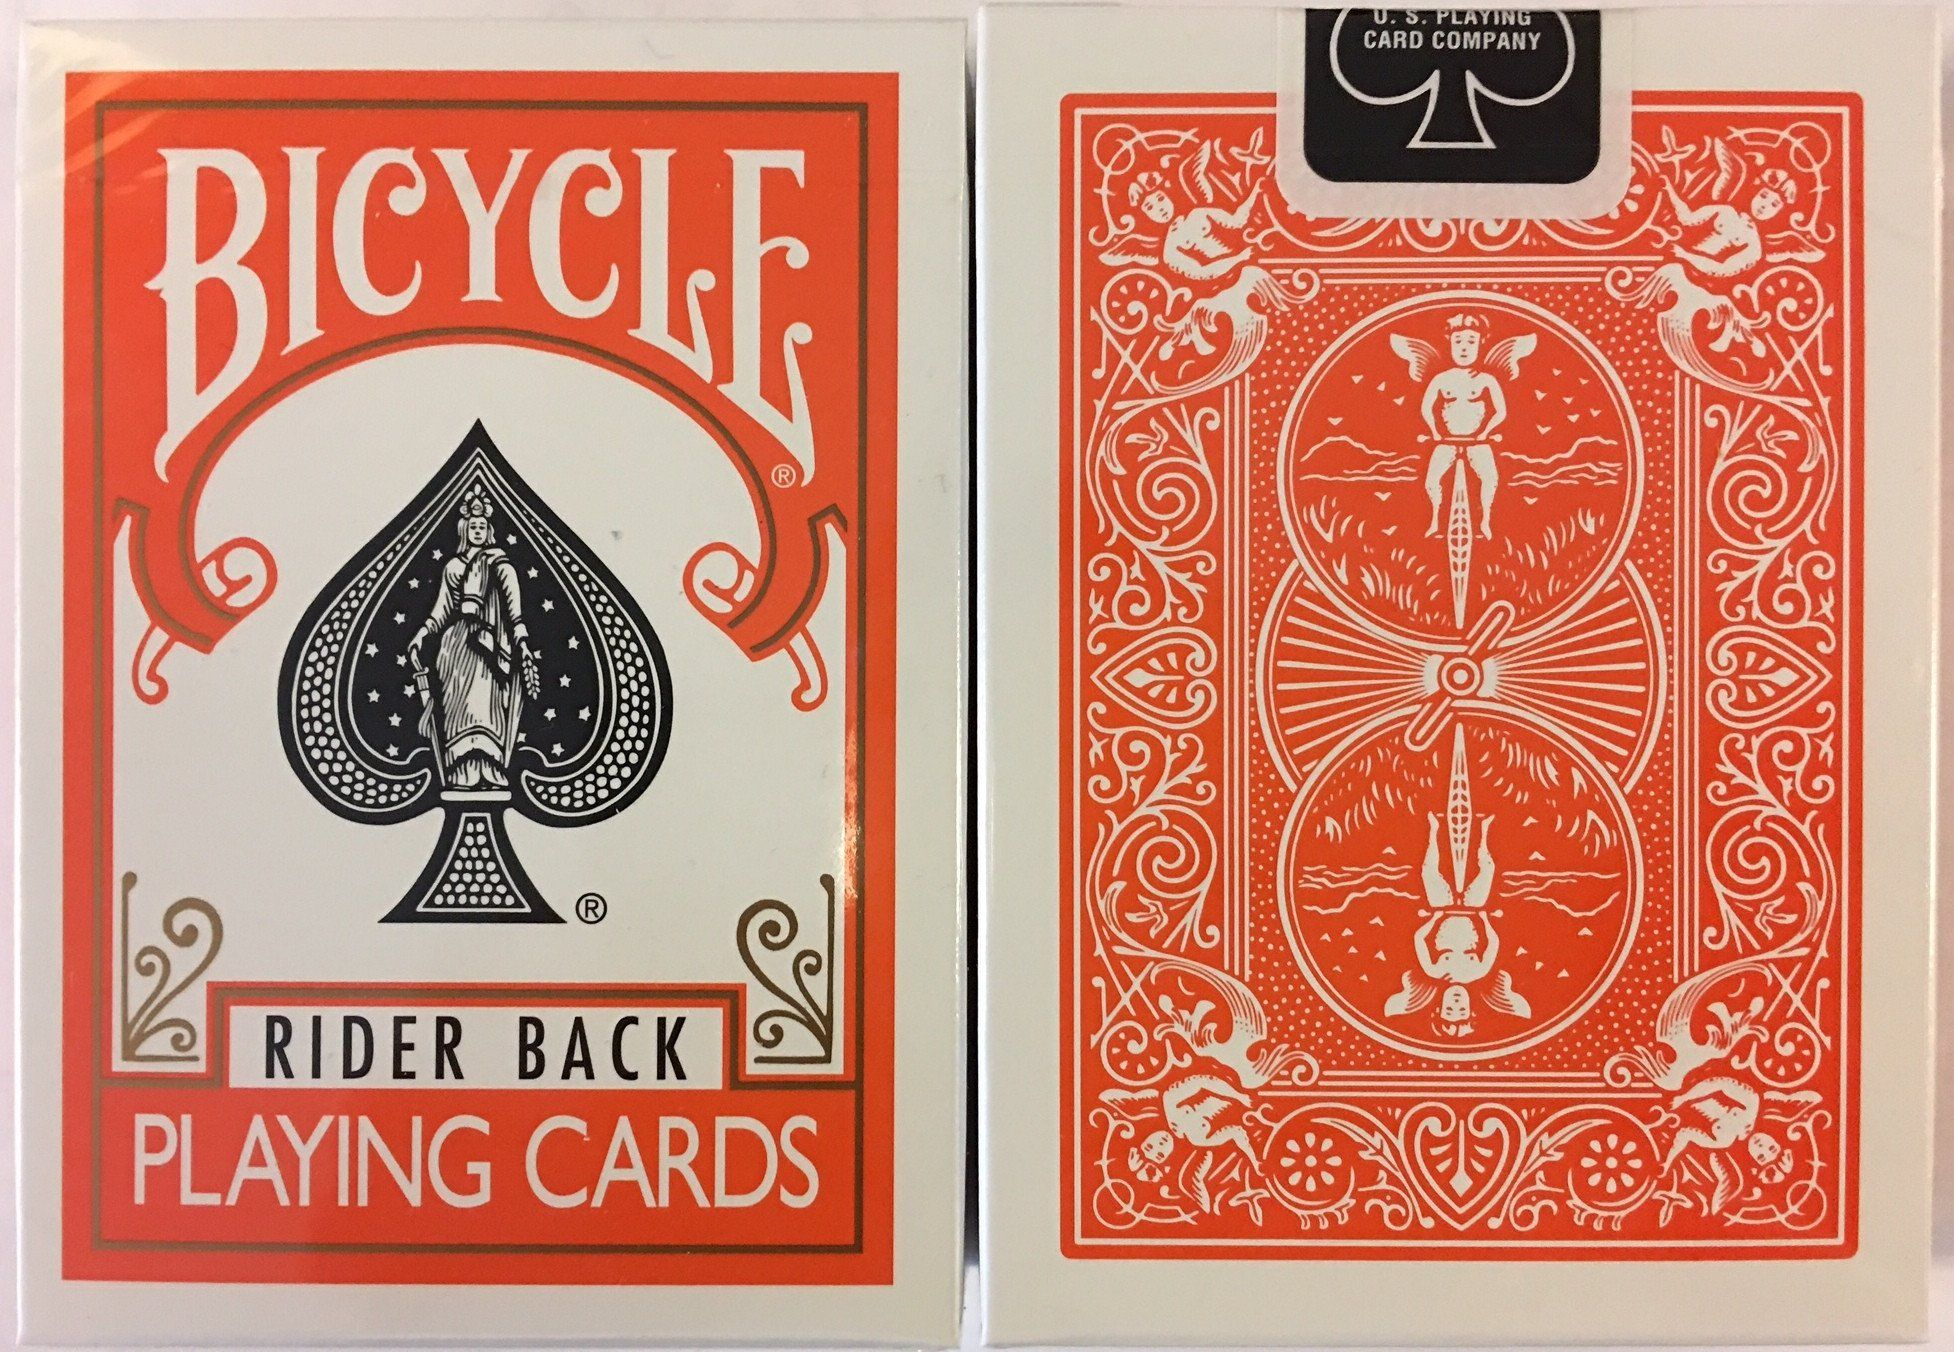 Orange Rider Back Bicycle Playing Cards | Products | Bicycle